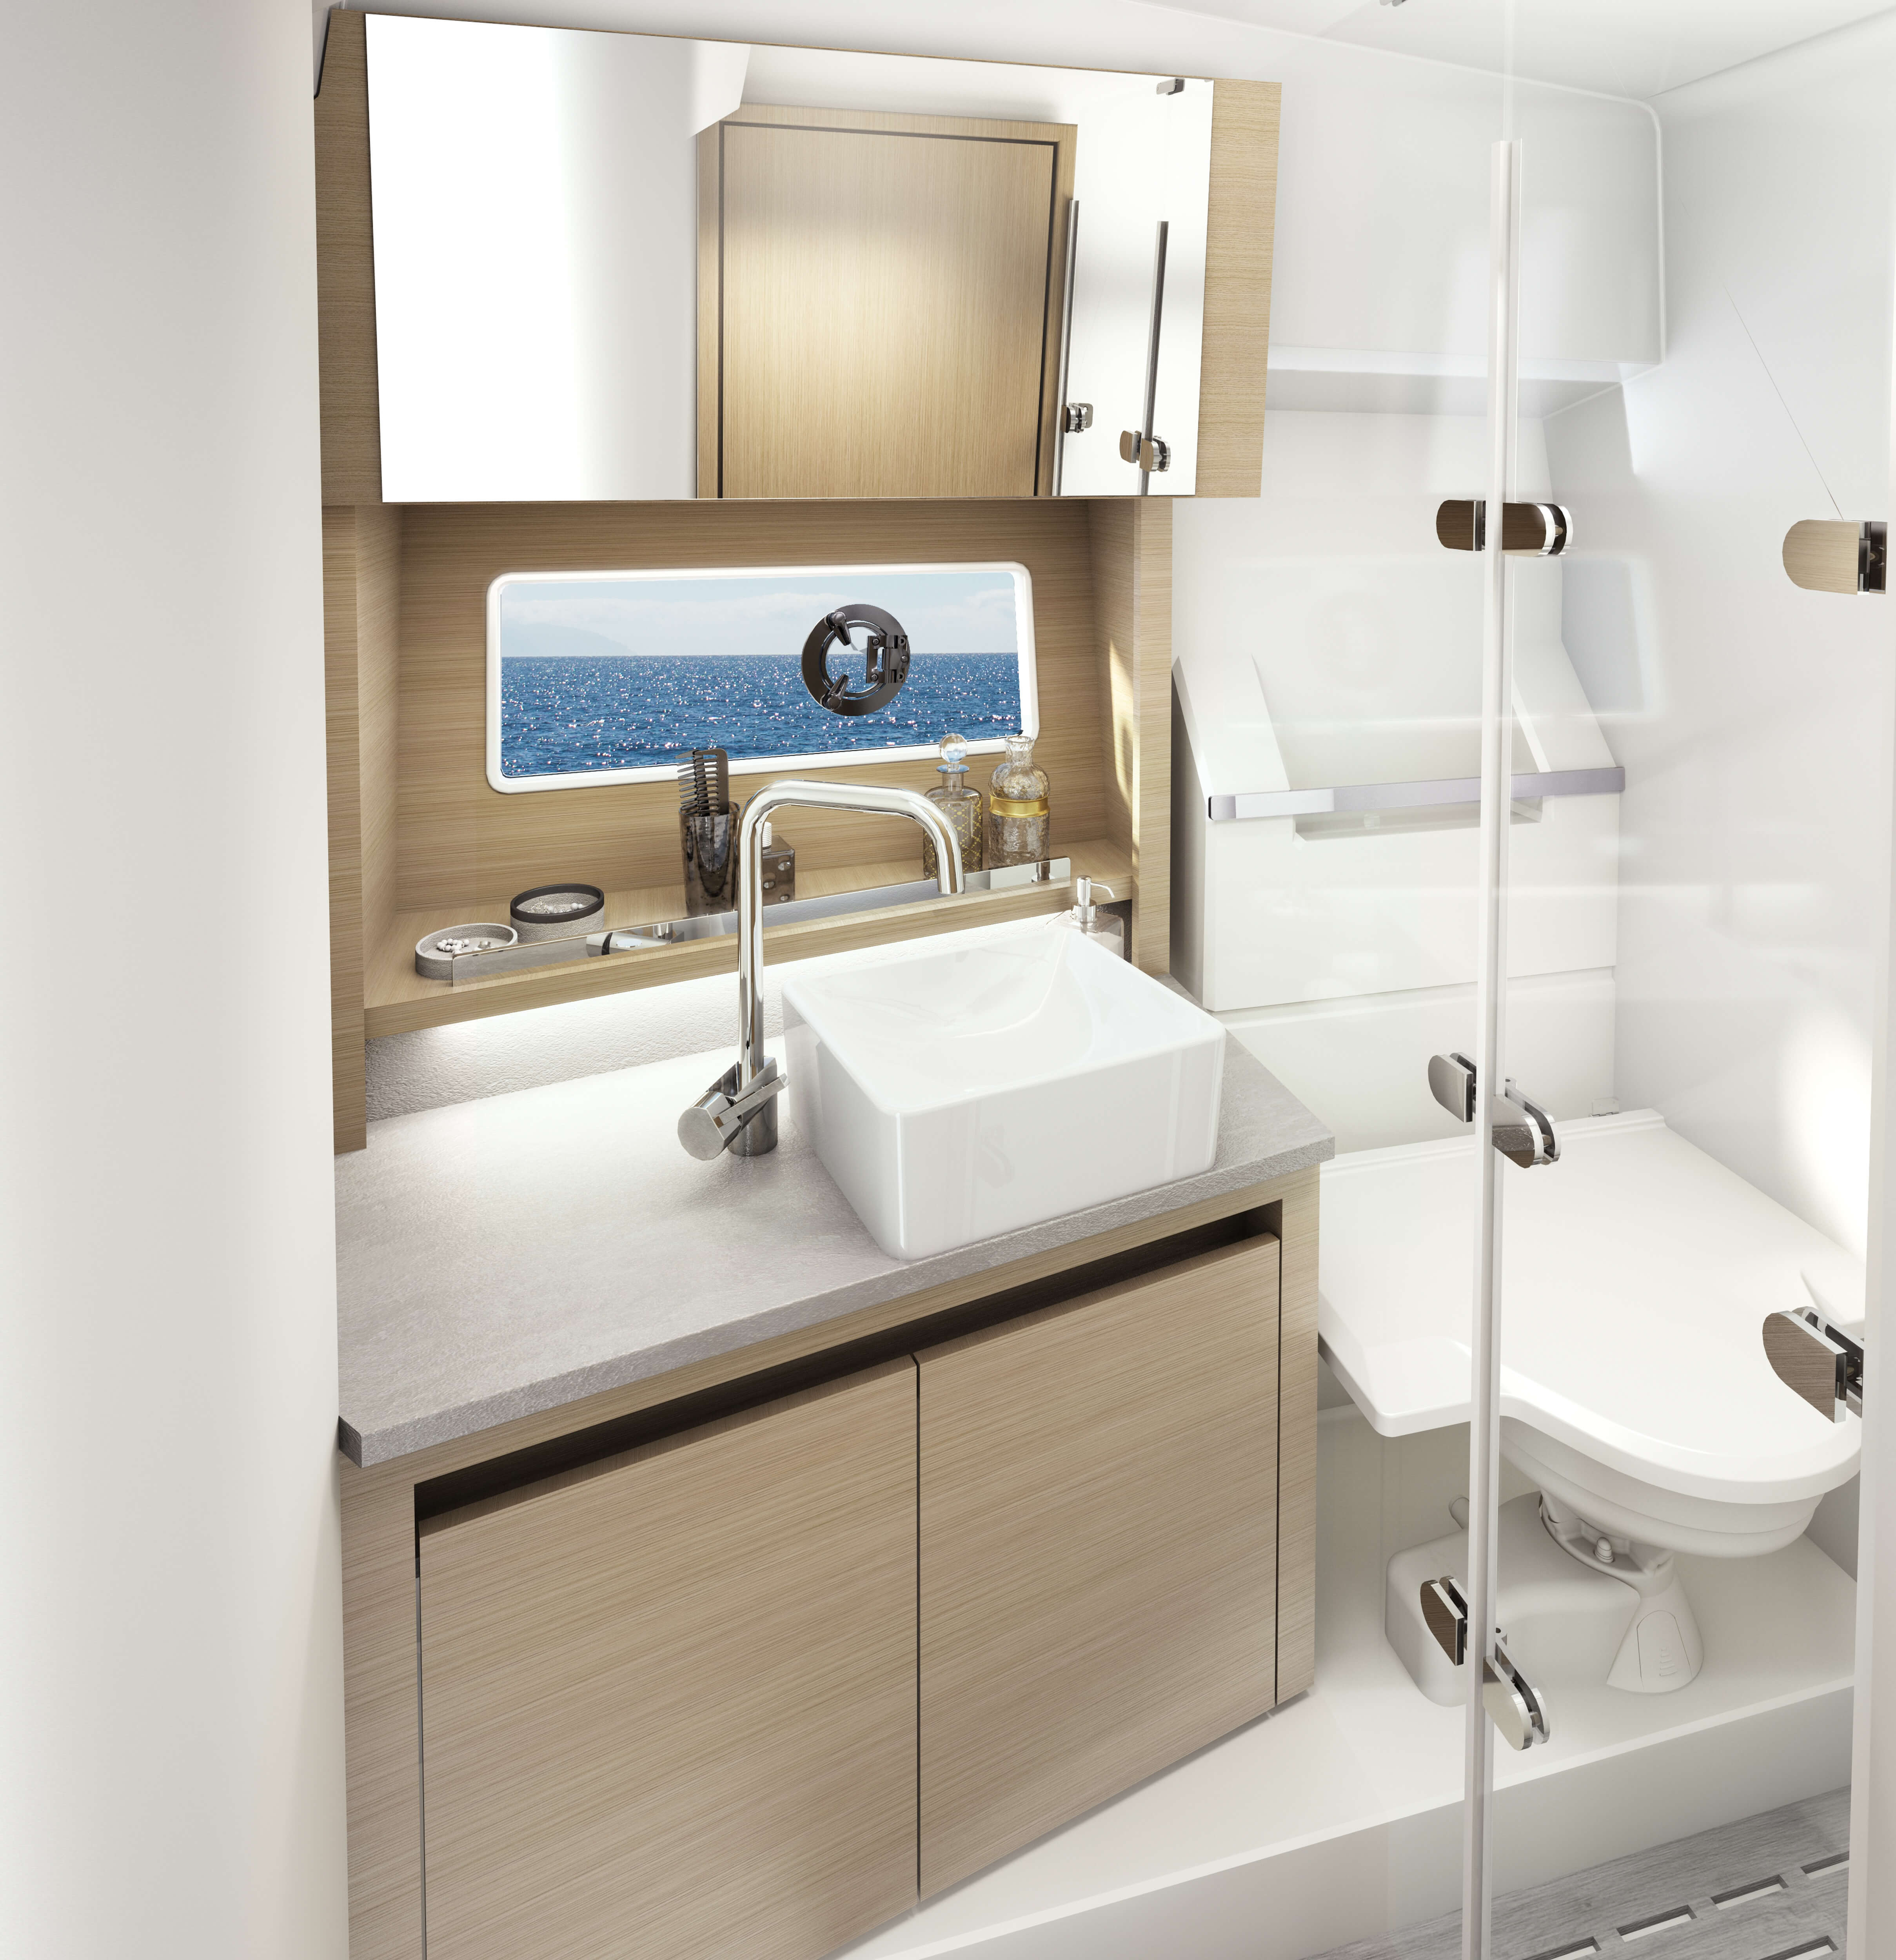 Sealine C335 bathroom | A place of well-being - inspired by the aestetics of a modern spa resort. | Sealine